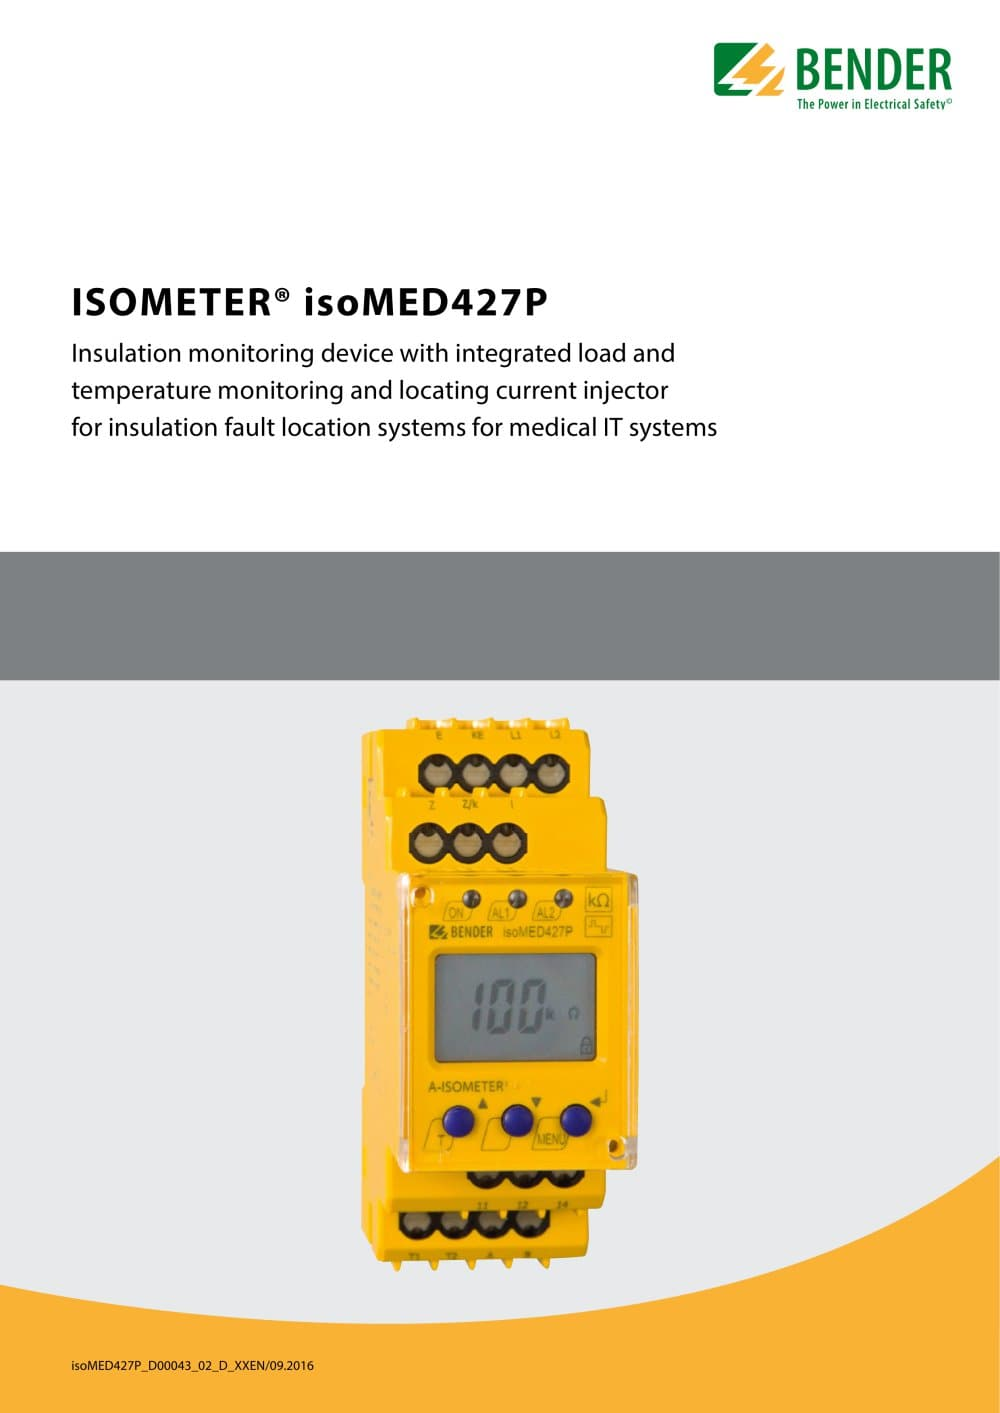 Isometer Isomed427p Bender Pdf Catalogue Technical Mk Wiring Devices 2016 1 6 Pages